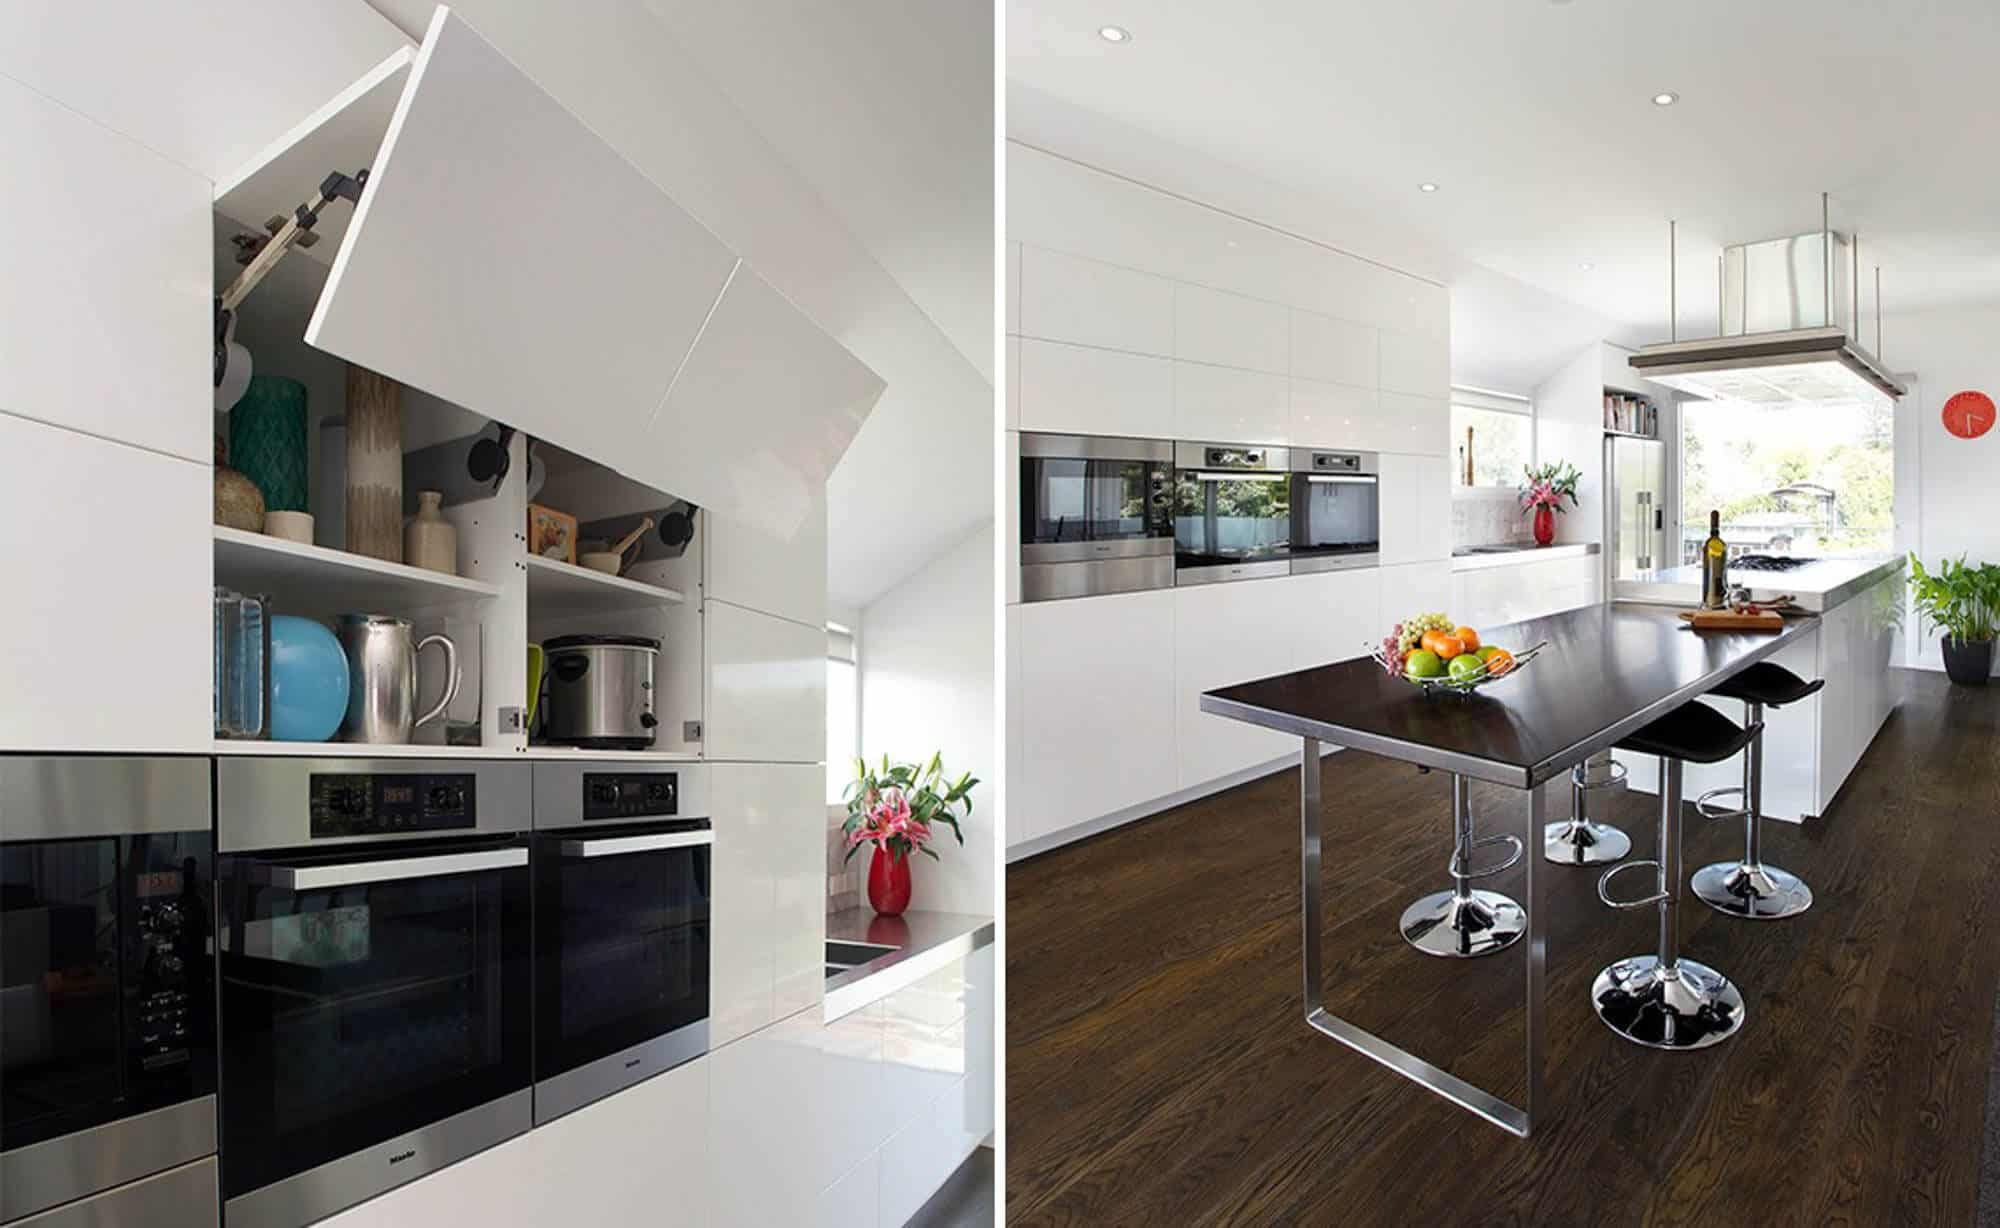 Consider ergonomical and easy to access spaces instead of traditional  cupboardsKitchen Design and Renovating Ideas   Gentleman s Gazette. Easy Kitchen Designer. Home Design Ideas